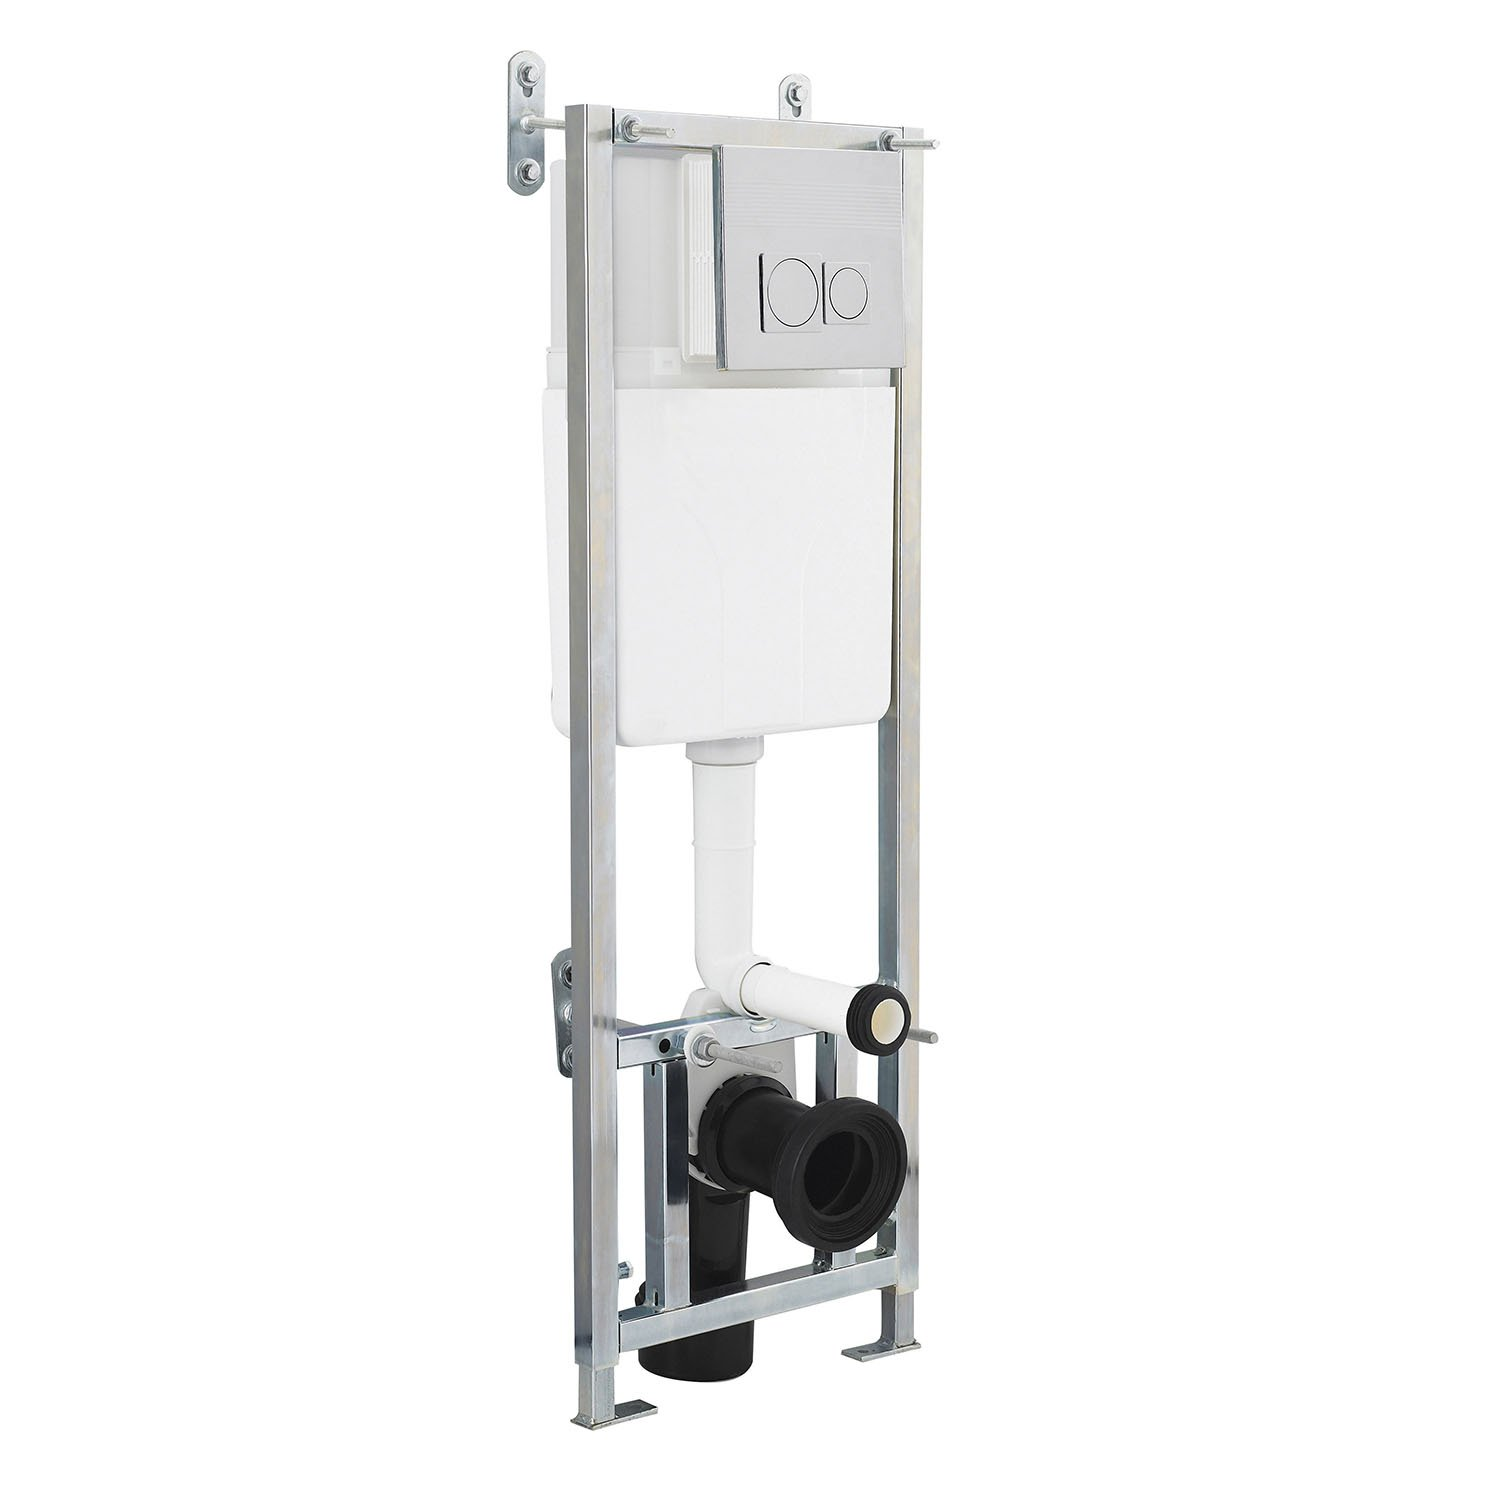 Hudson Reed XTY006 Universal Access Concealed Cistern - Black Premier